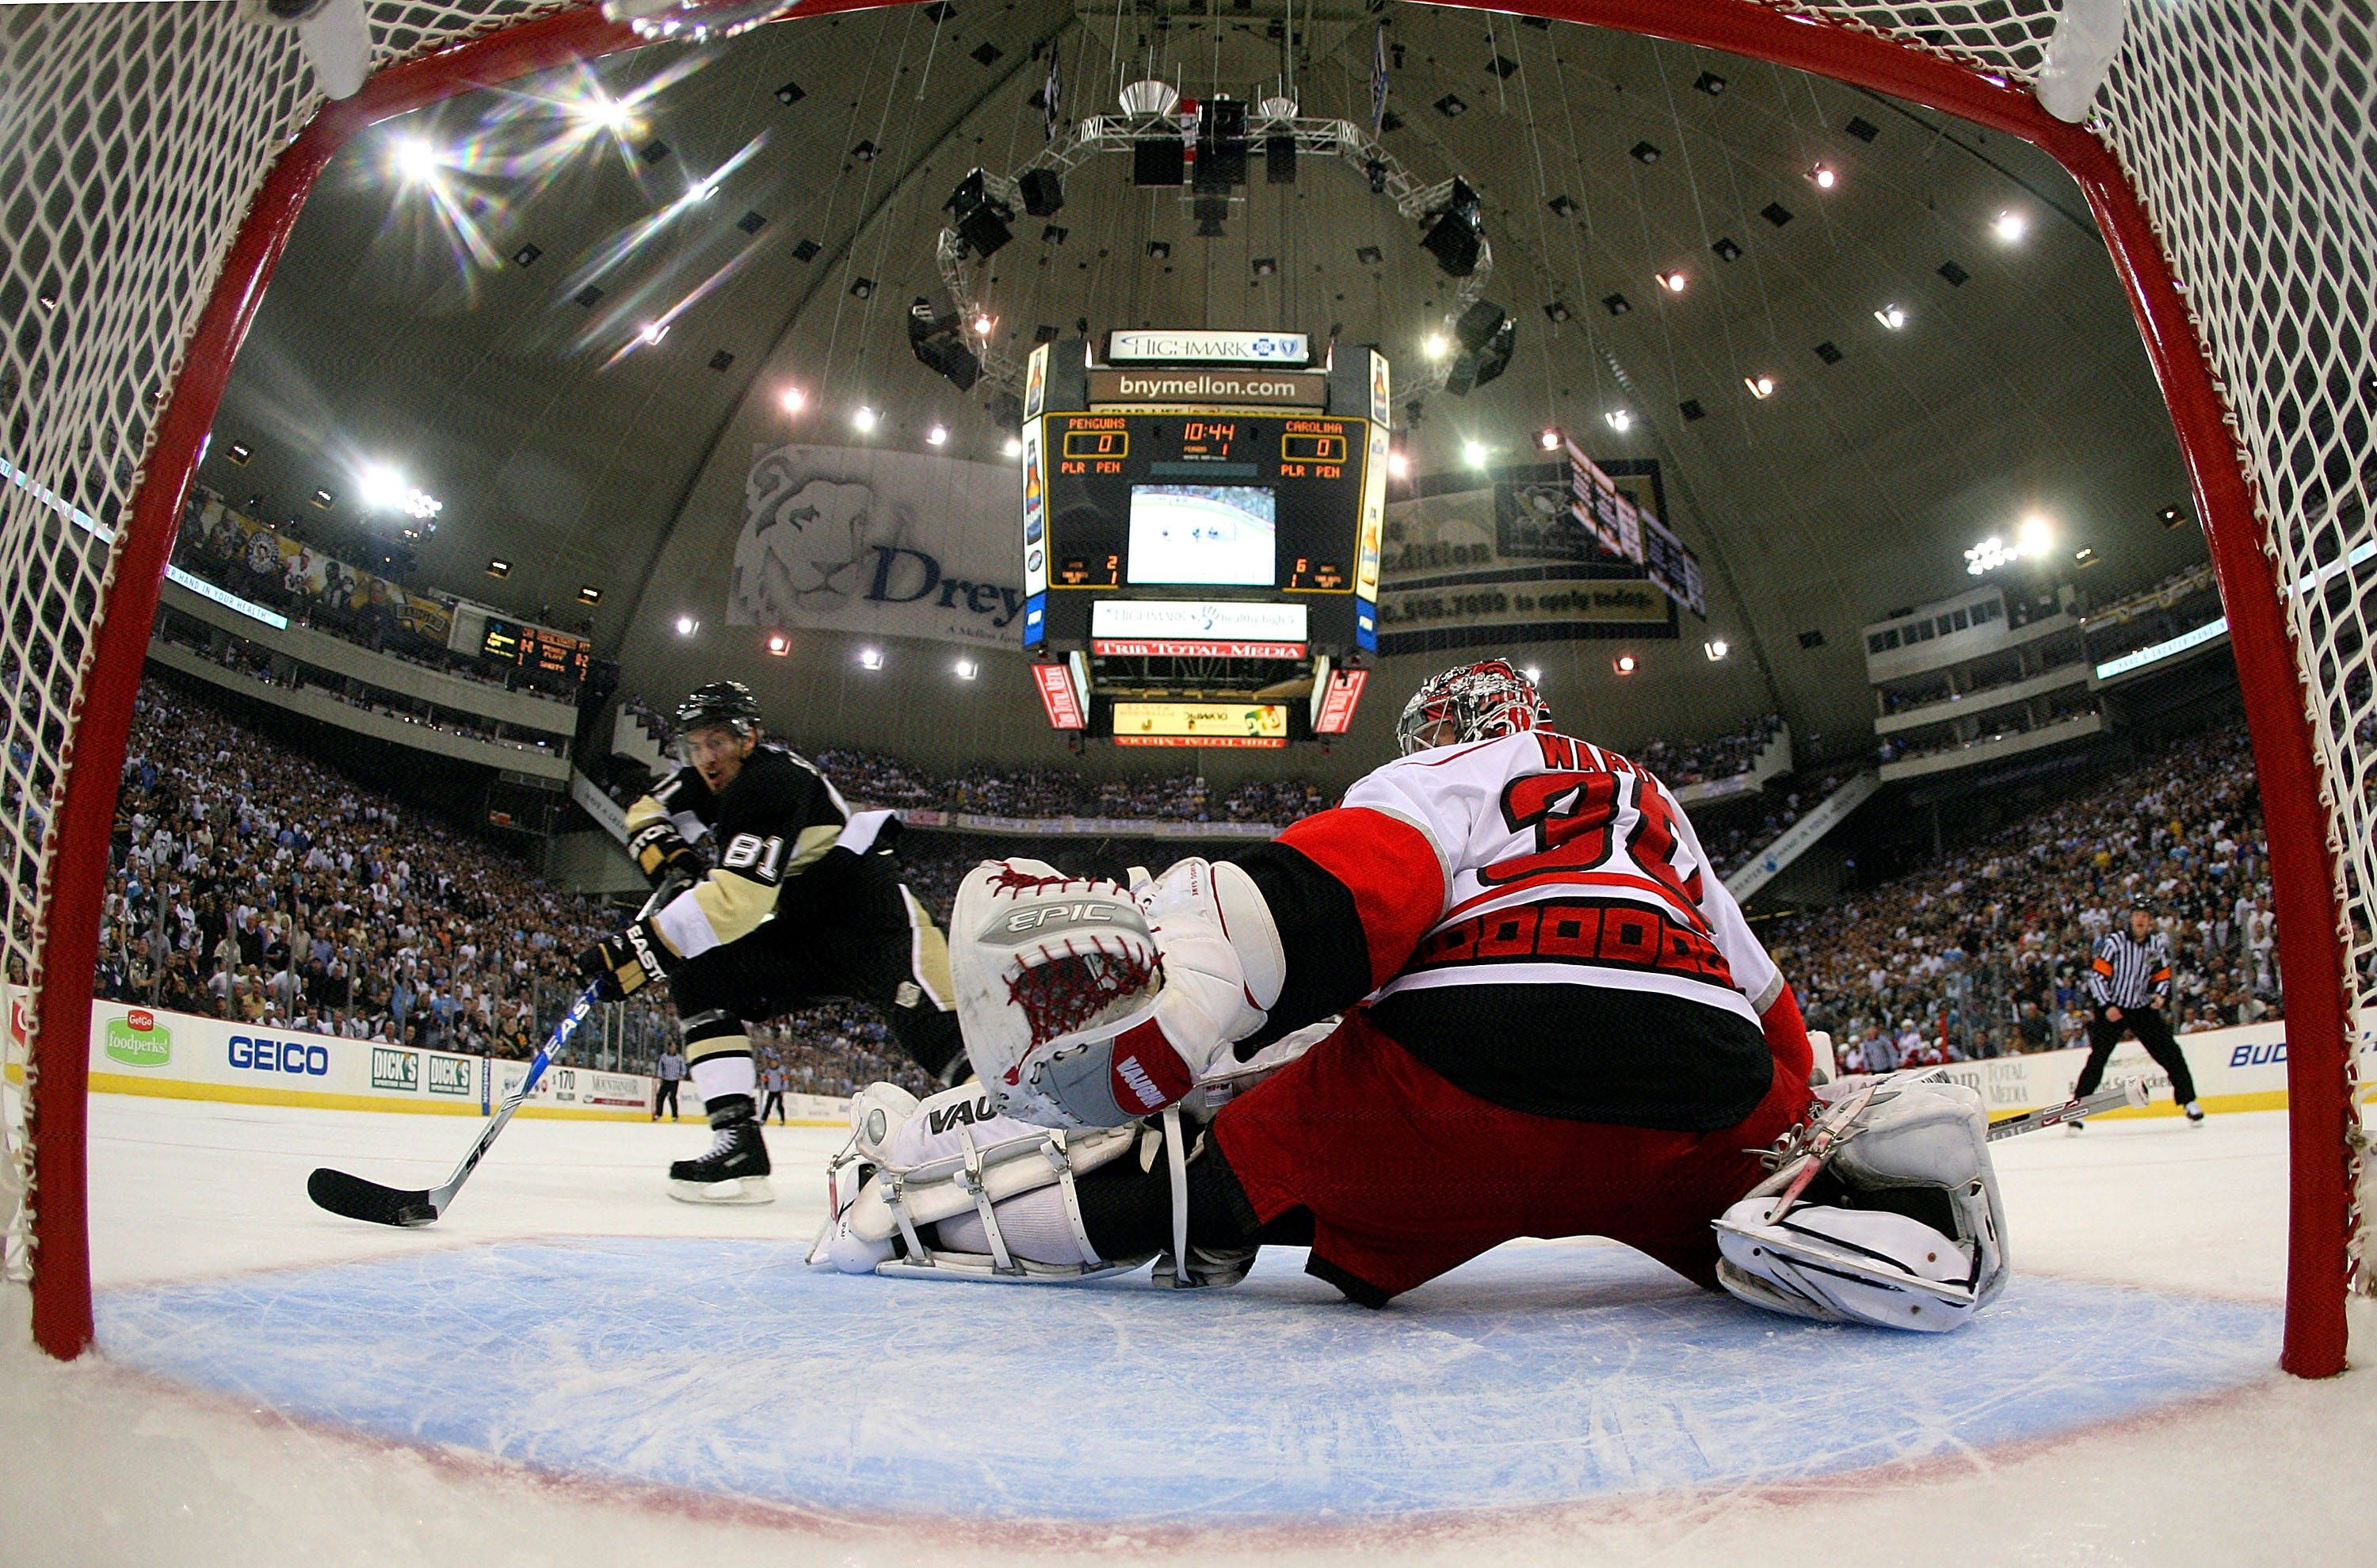 Ot good place for net cam pictures hfboards goalies ice hockey voltagebd Gallery